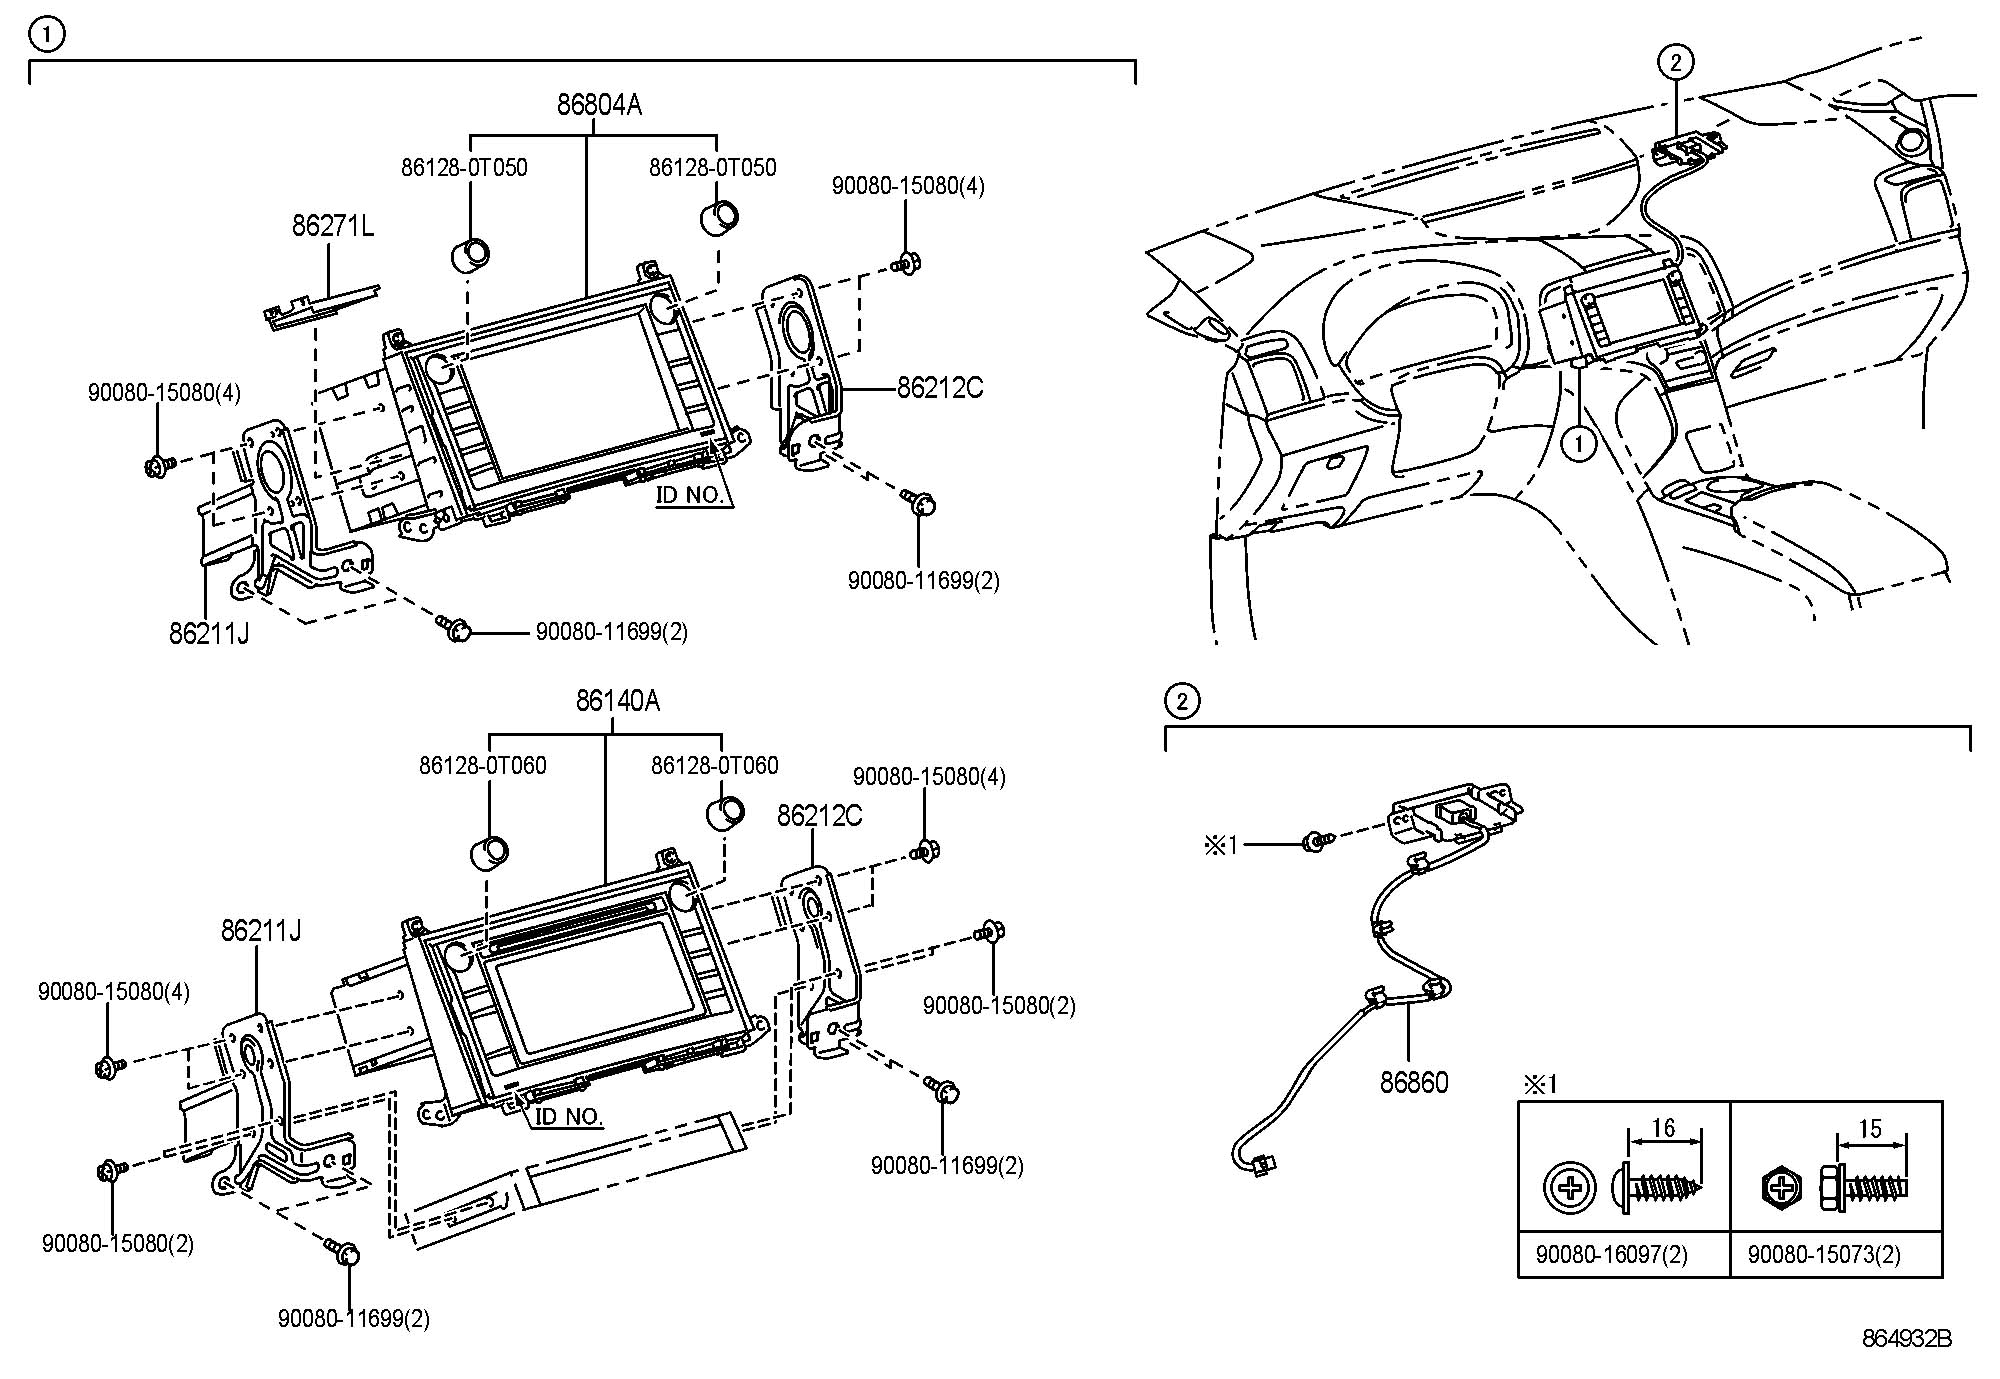 Toyota Venza Receiver assembly, radio & display. Receiver